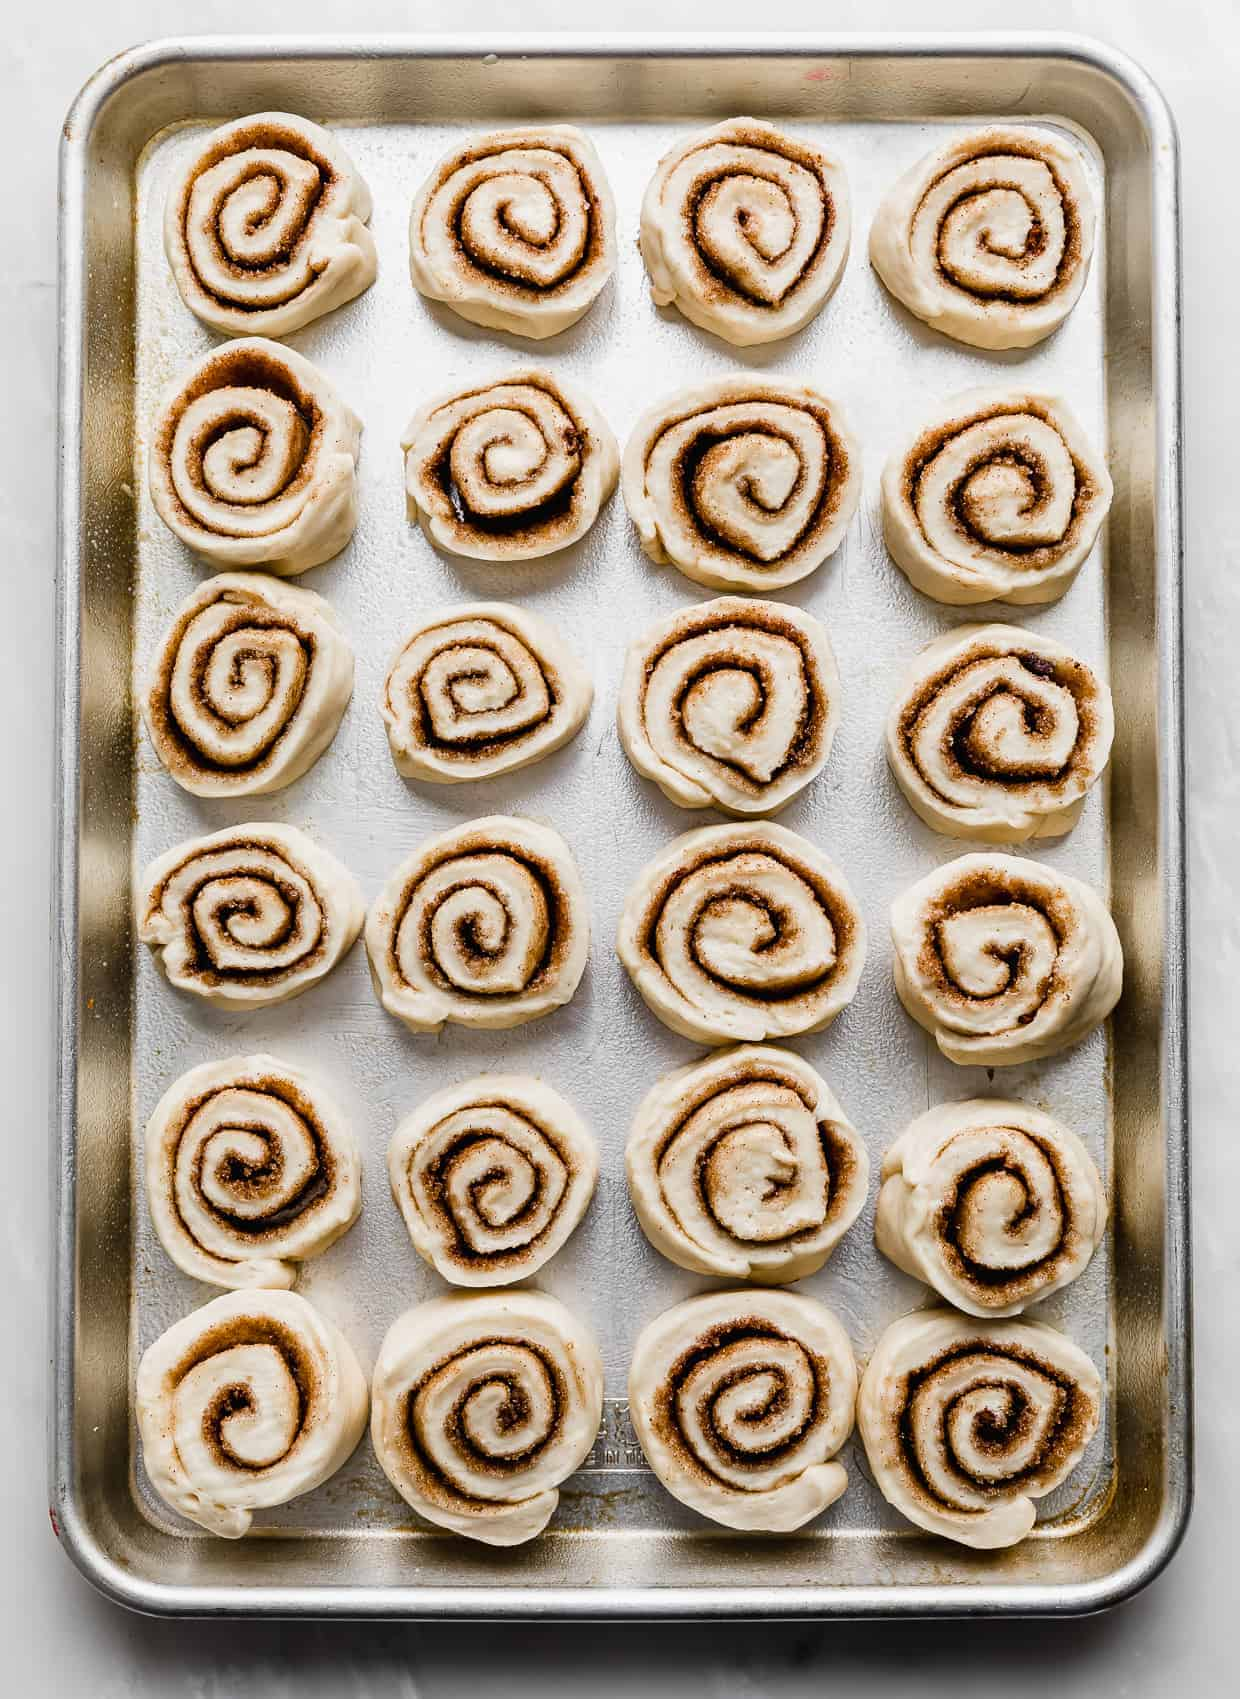 A jelly roll pan with raw mini cinnamon rolls lined up on it, 4 across, 6 down.